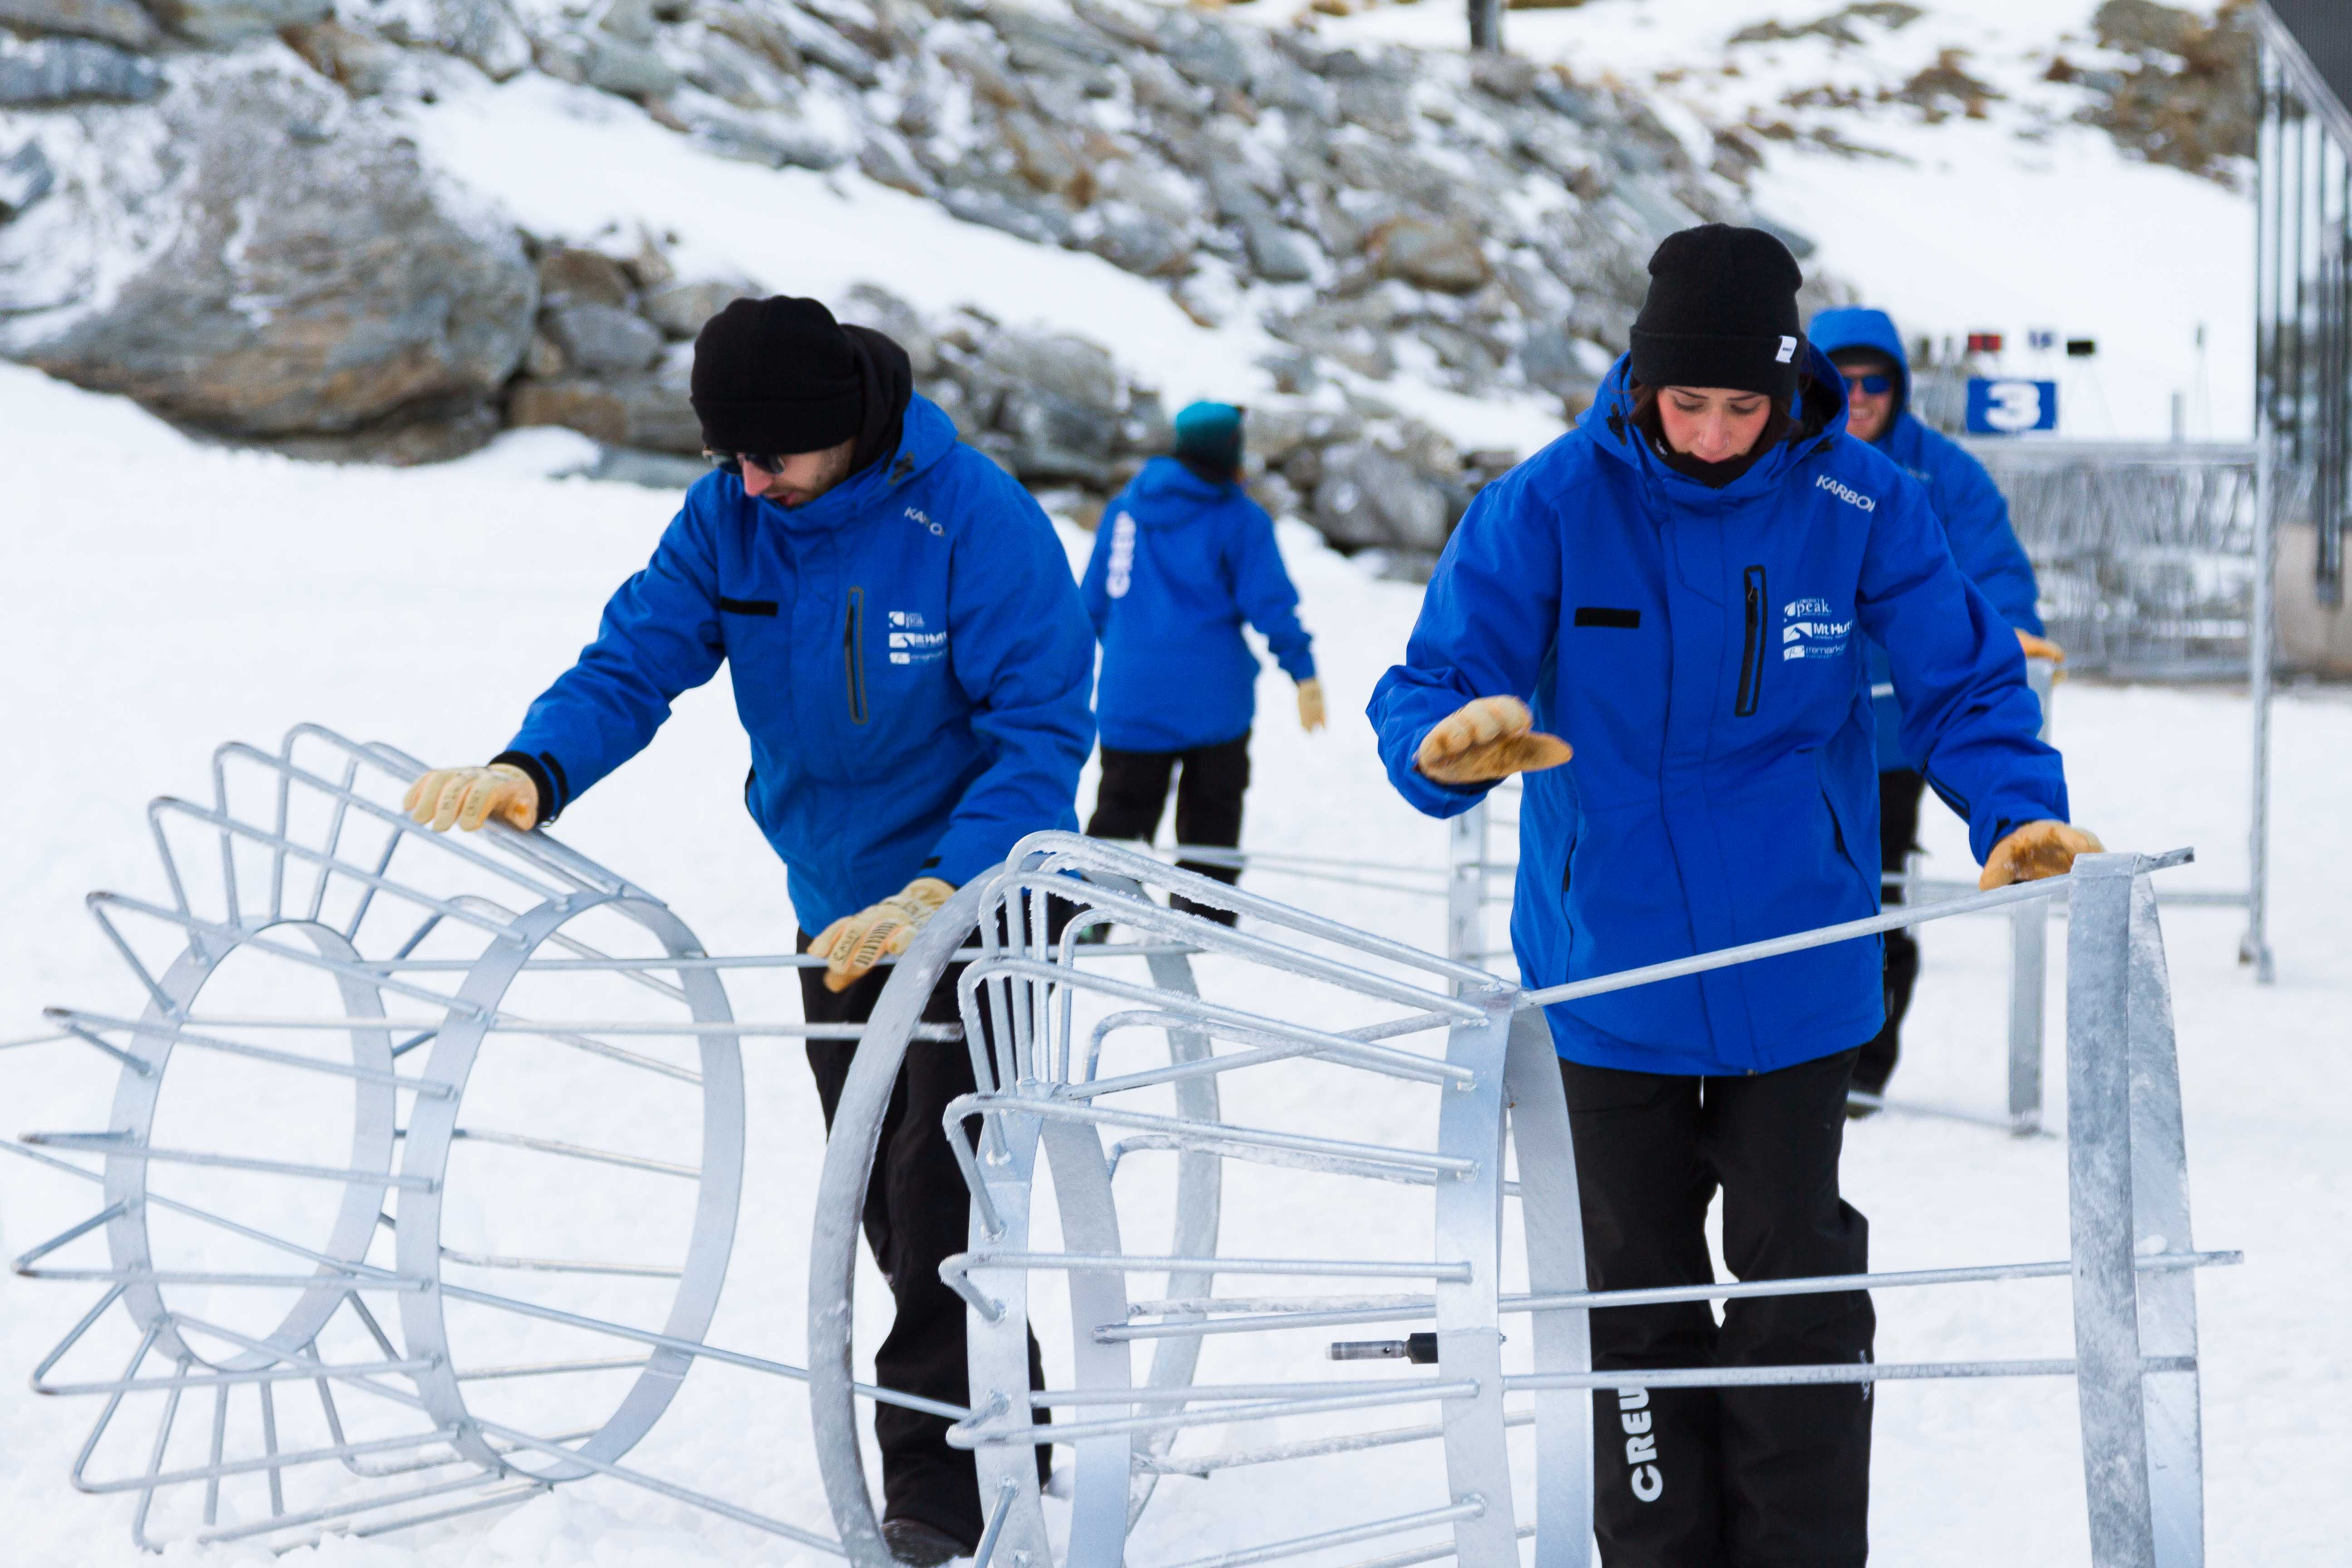 putting out the ski racks ready for first guests at the remarkables